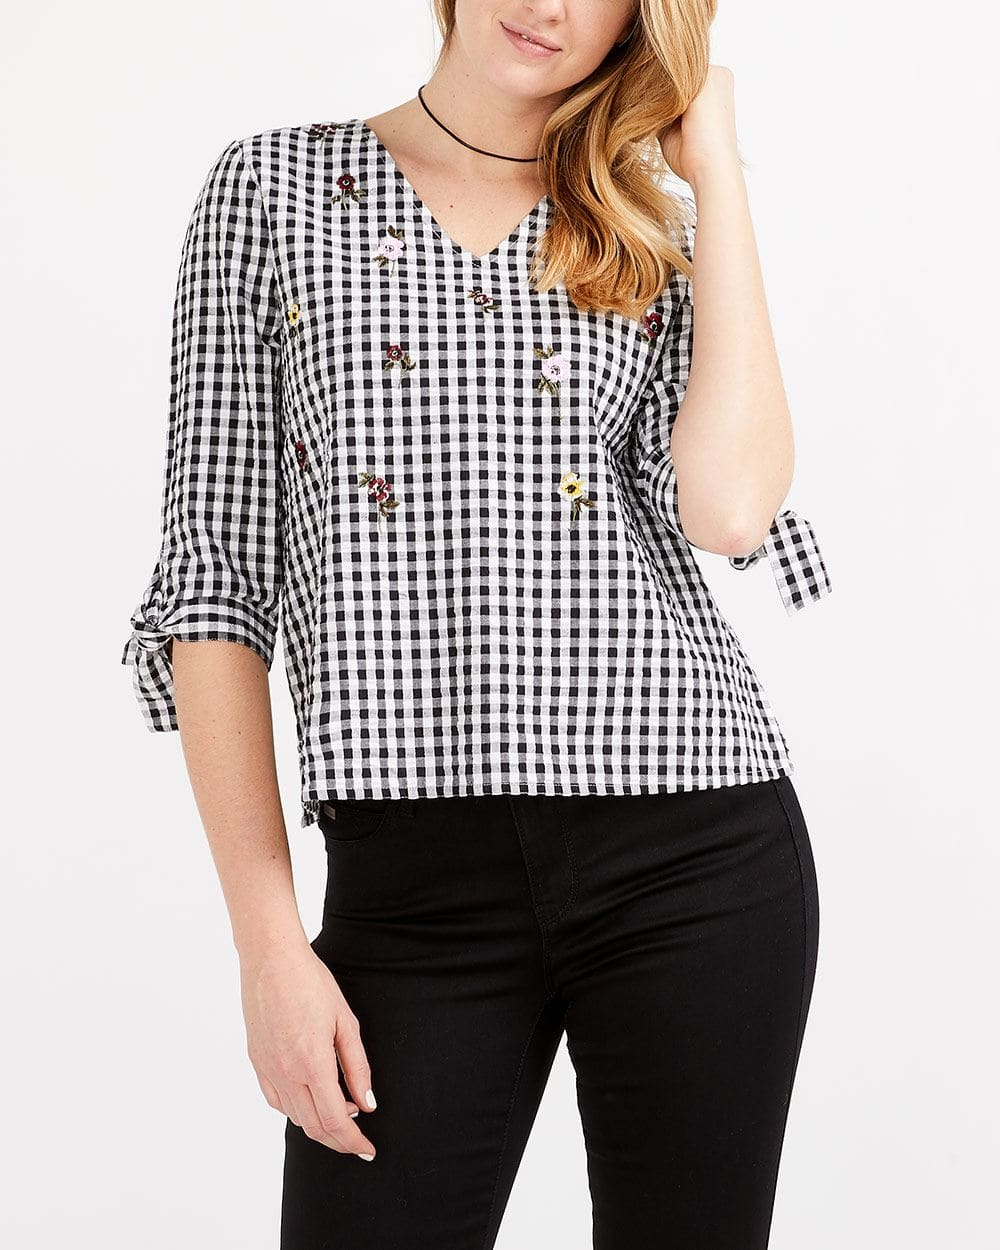 Embroidery Gingham Blouse